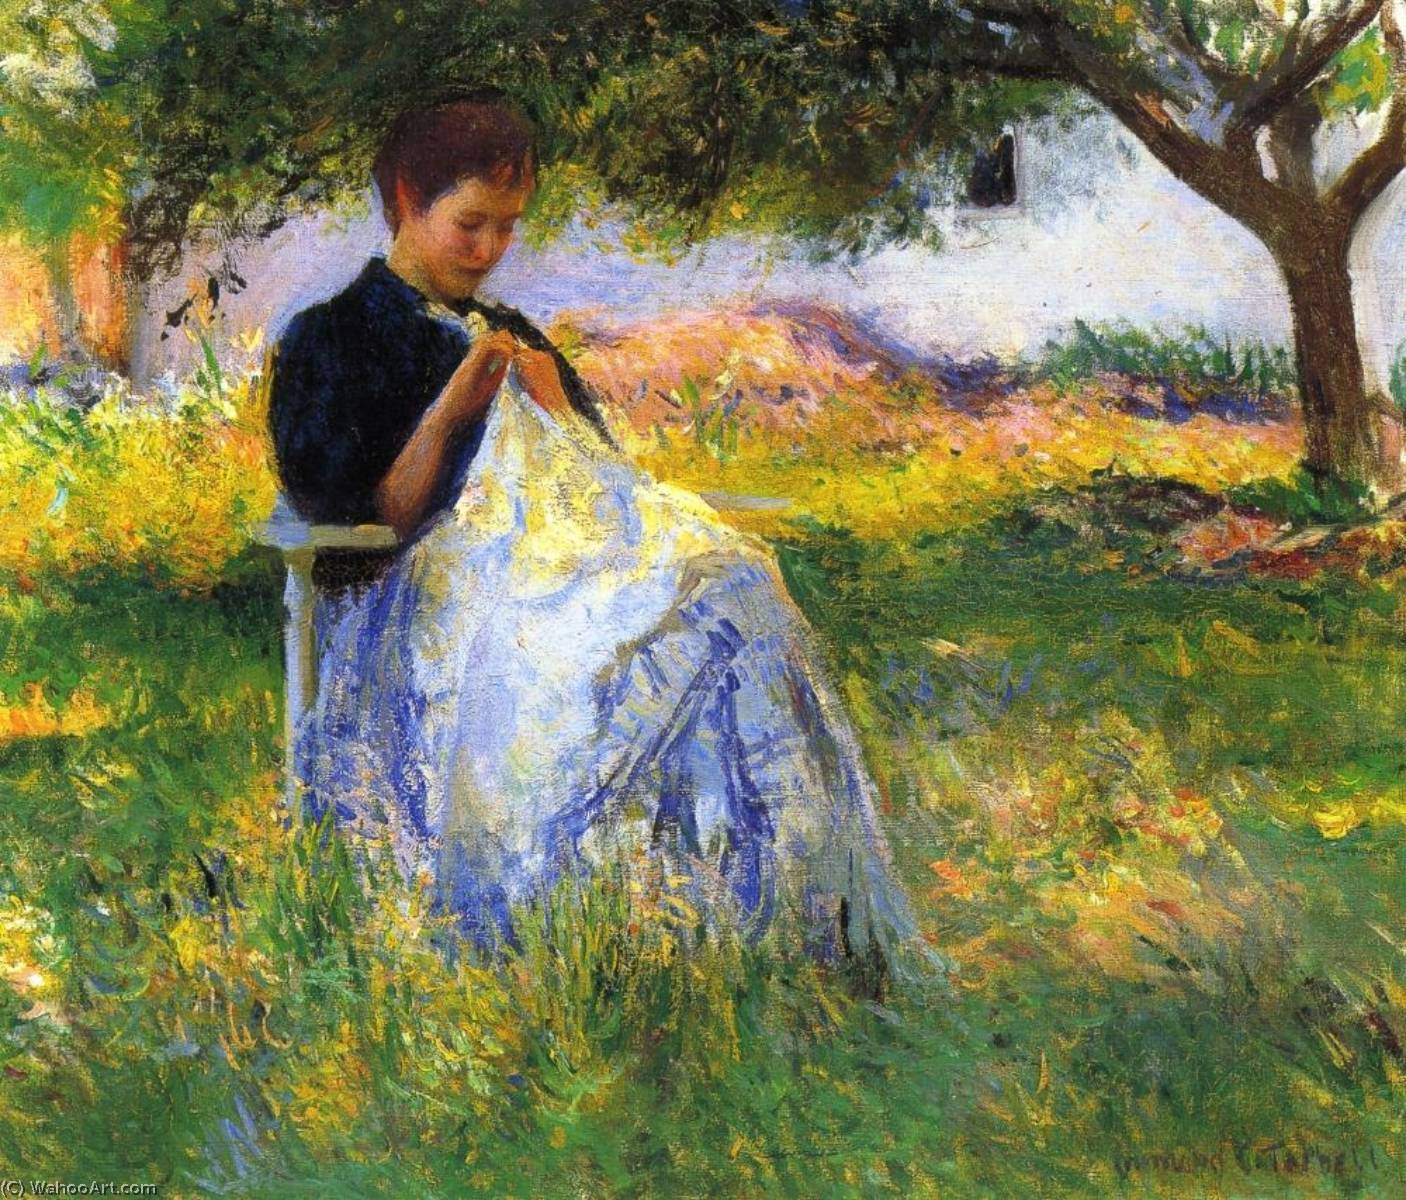 A Girl Sewing in an Orchard, 1891 by Edmund Charles Tarbell (1862-1938, United States) | Famous Paintings Reproductions | WahooArt.com